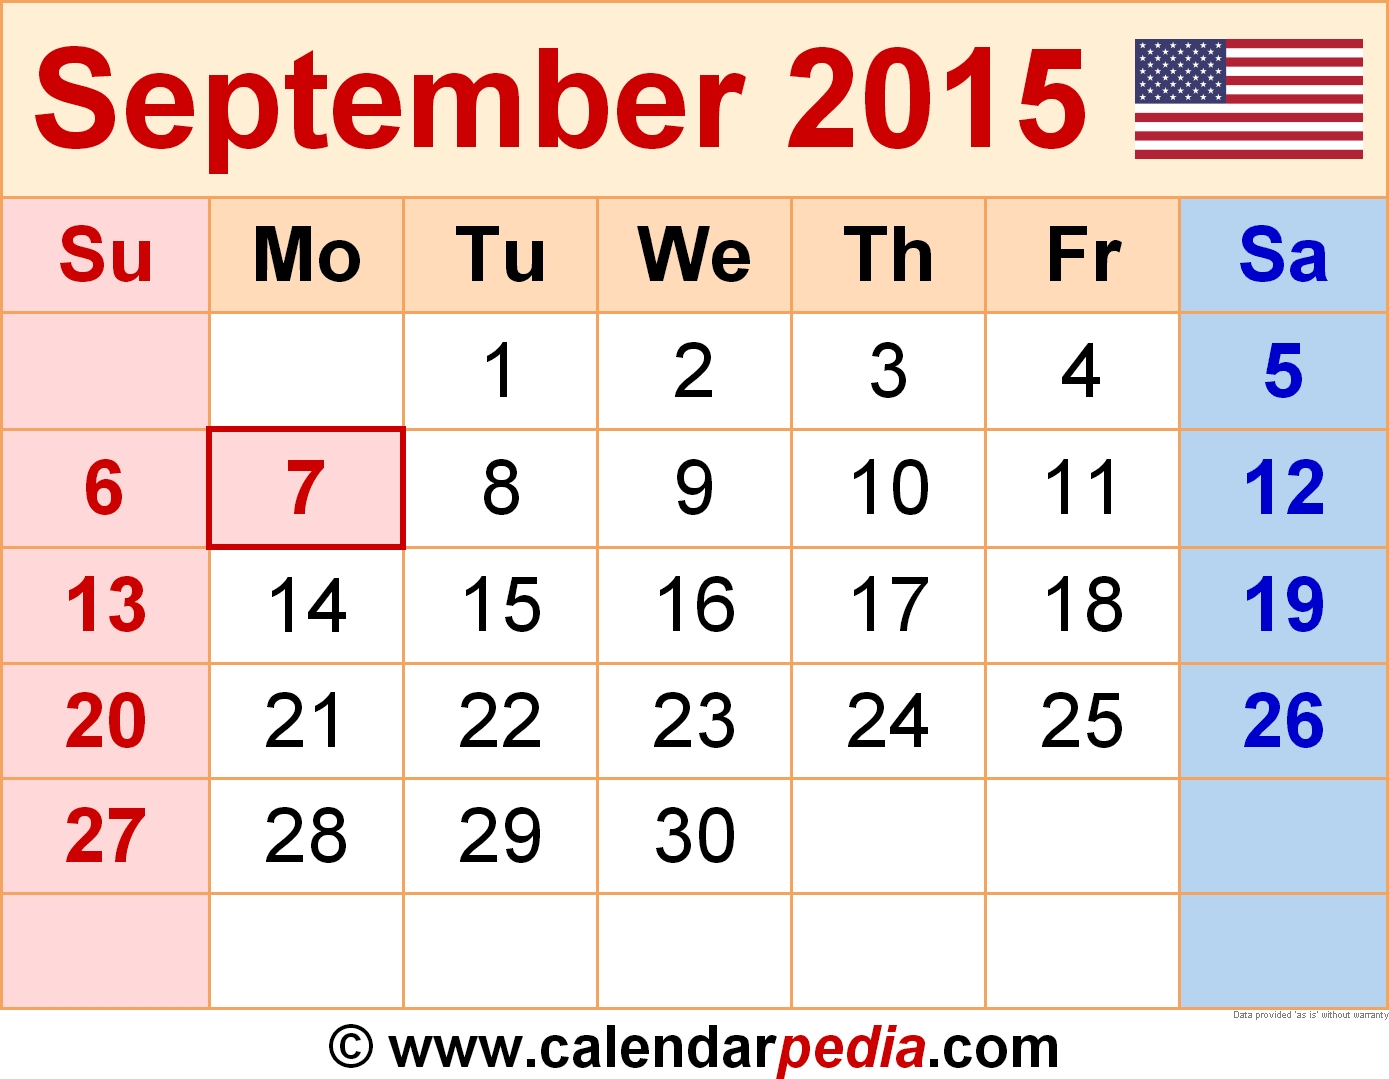 September 2015 Calendar | Templates For Word, Excel And Pdf